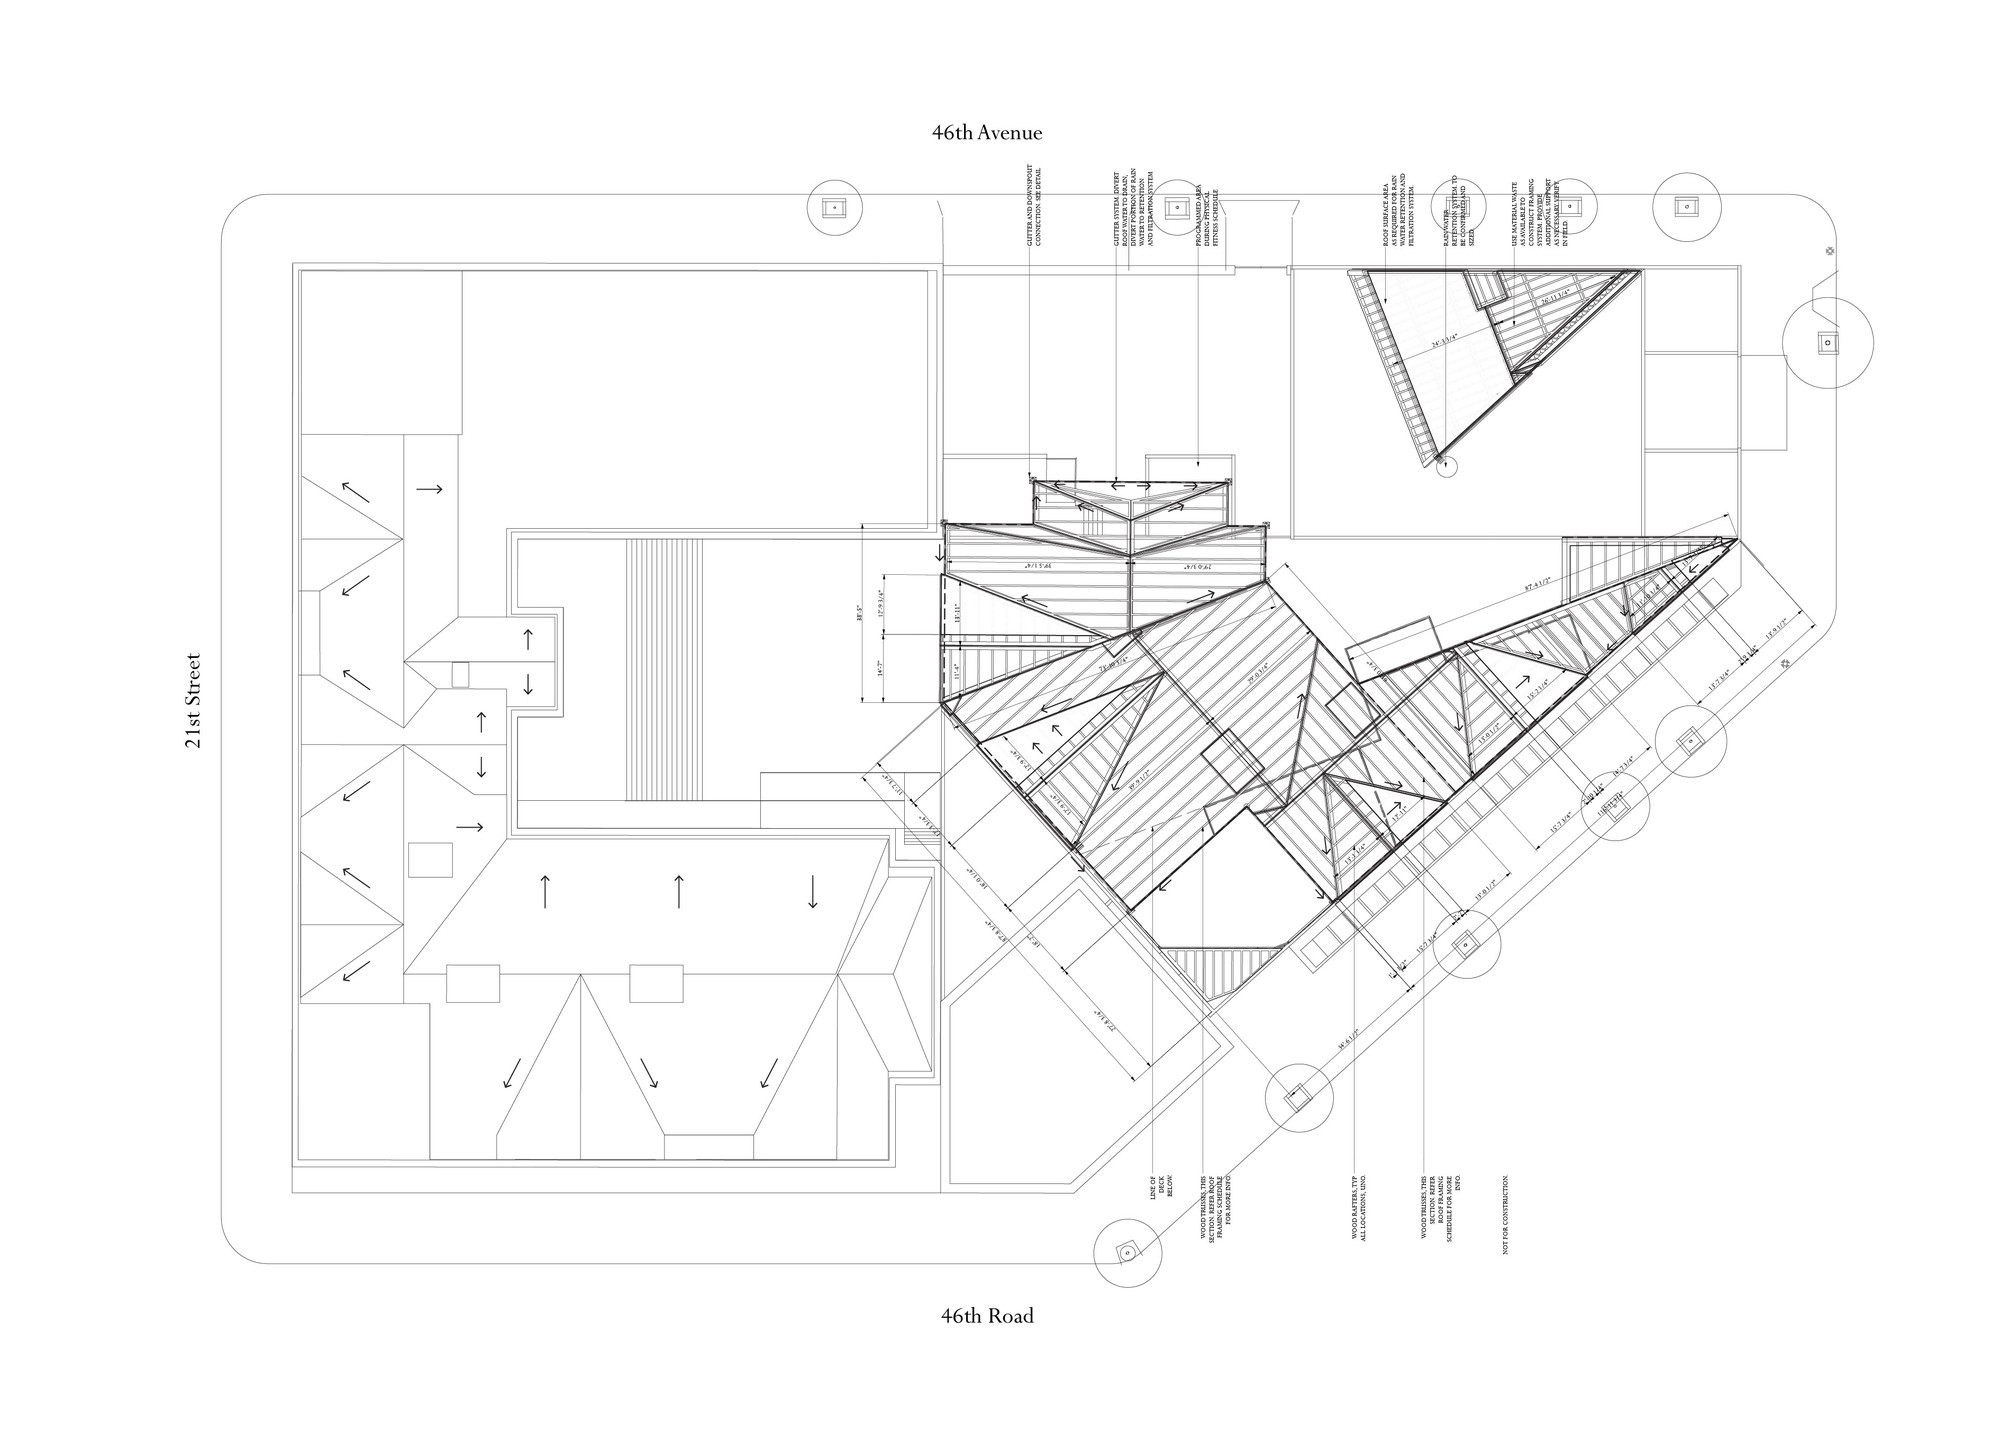 yard barn house floor plans with Roof Plans on Modern Home Designs Floor Plans as well Architecture A Geometric H tons House By Leroy Street 463e2abc6dee6049 as well Plan details additionally I0000hH7Qj2q together with Plan details.